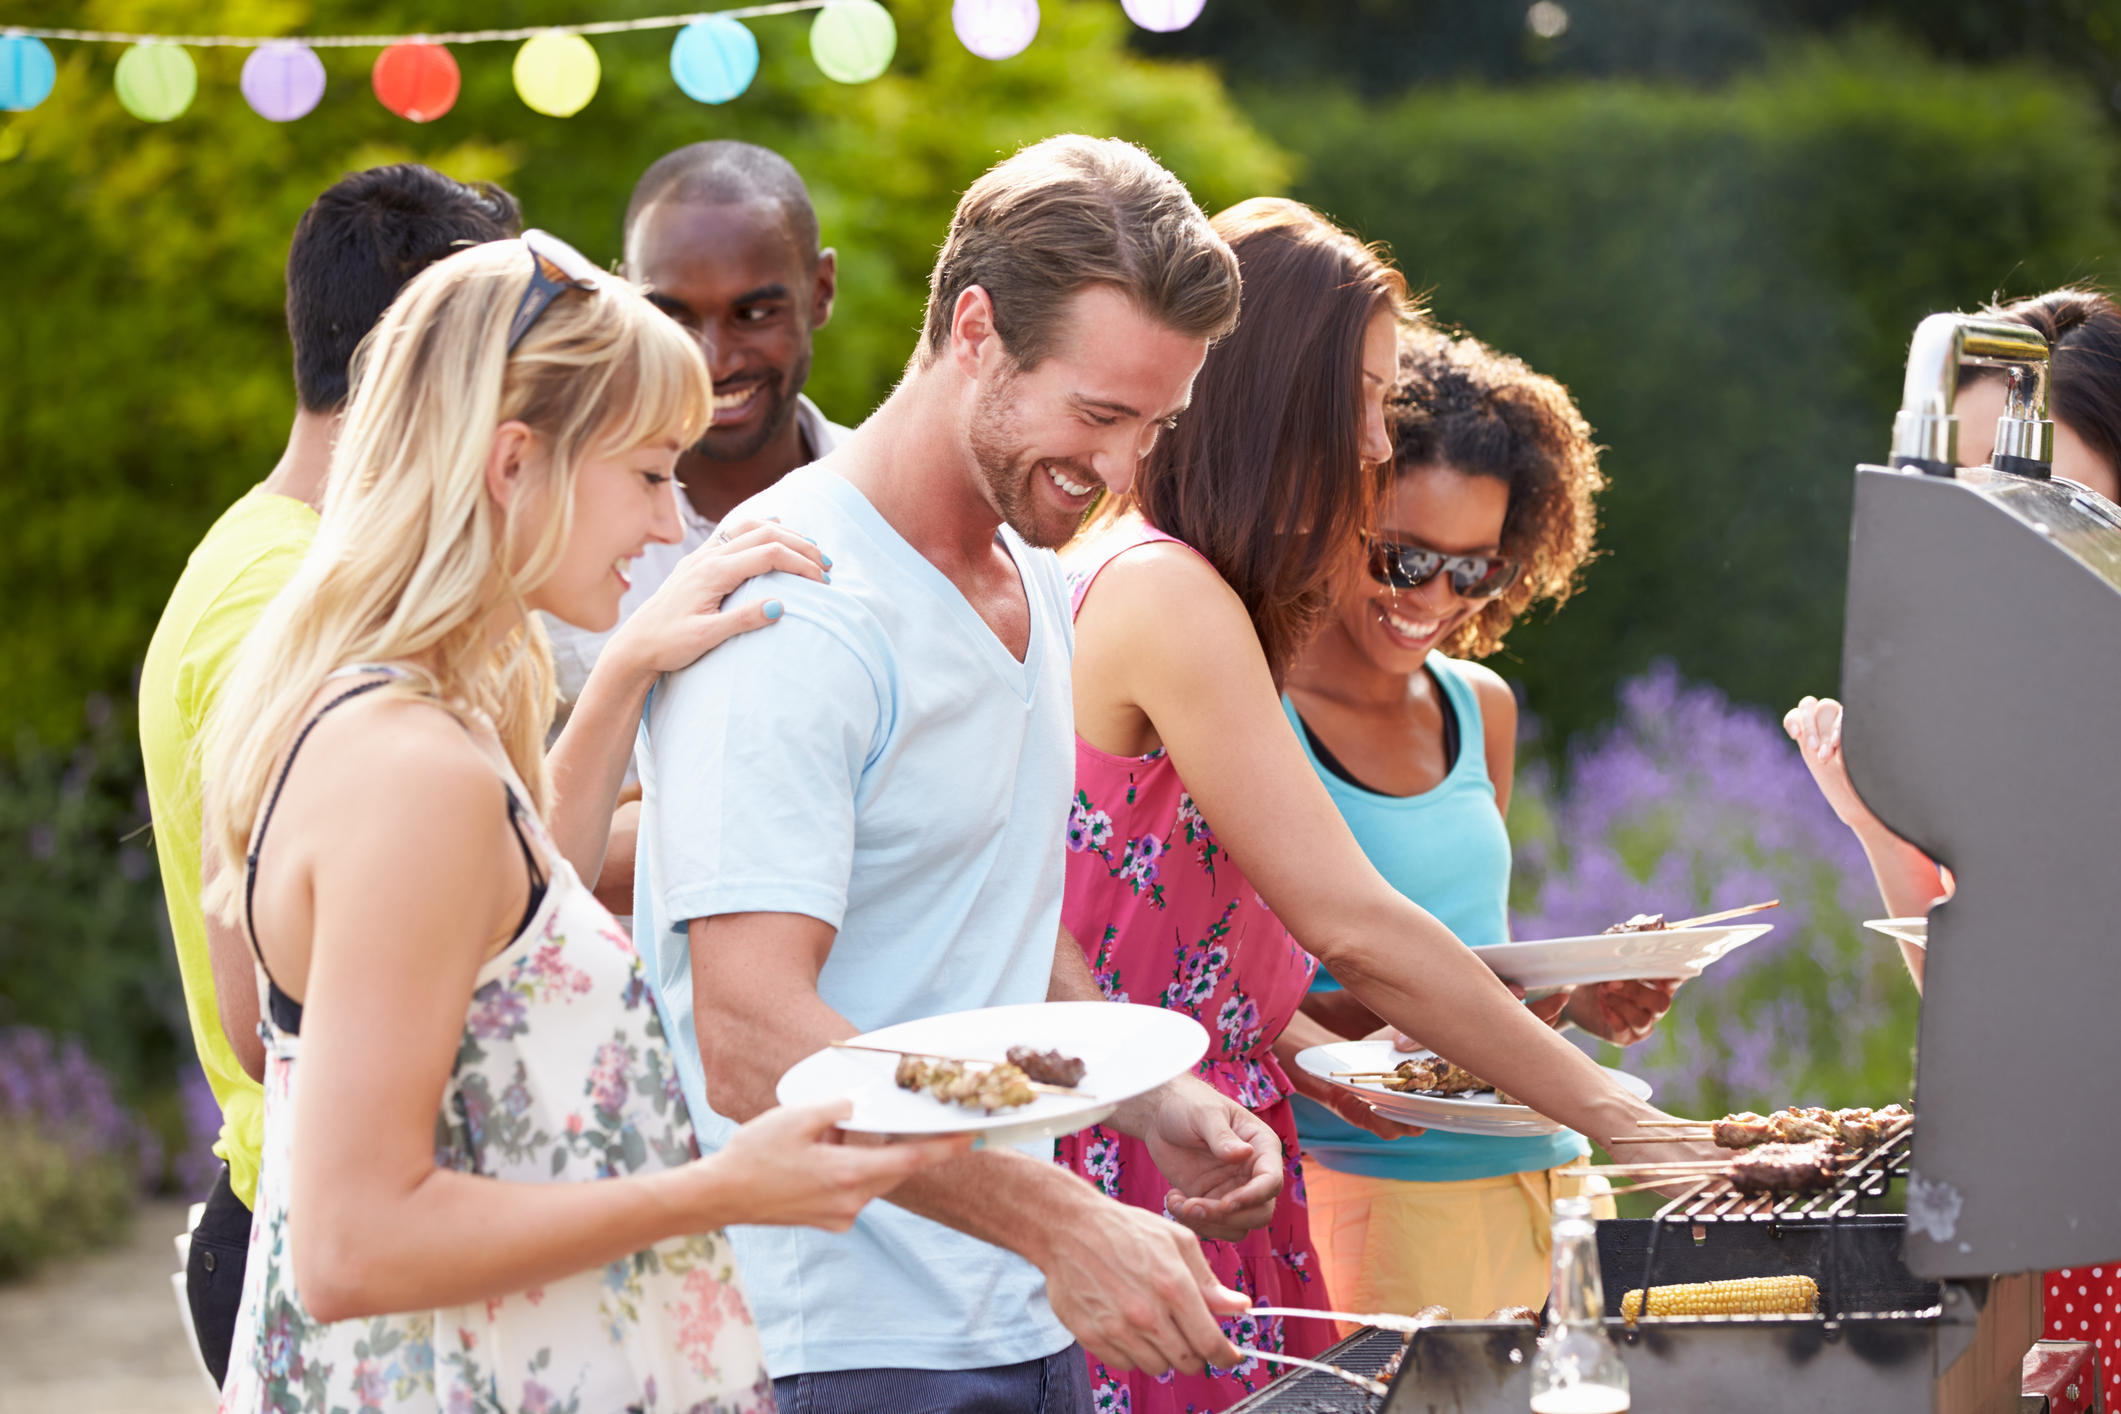 Group Of Friends Having Outdoor Barbeque At Home In Garden